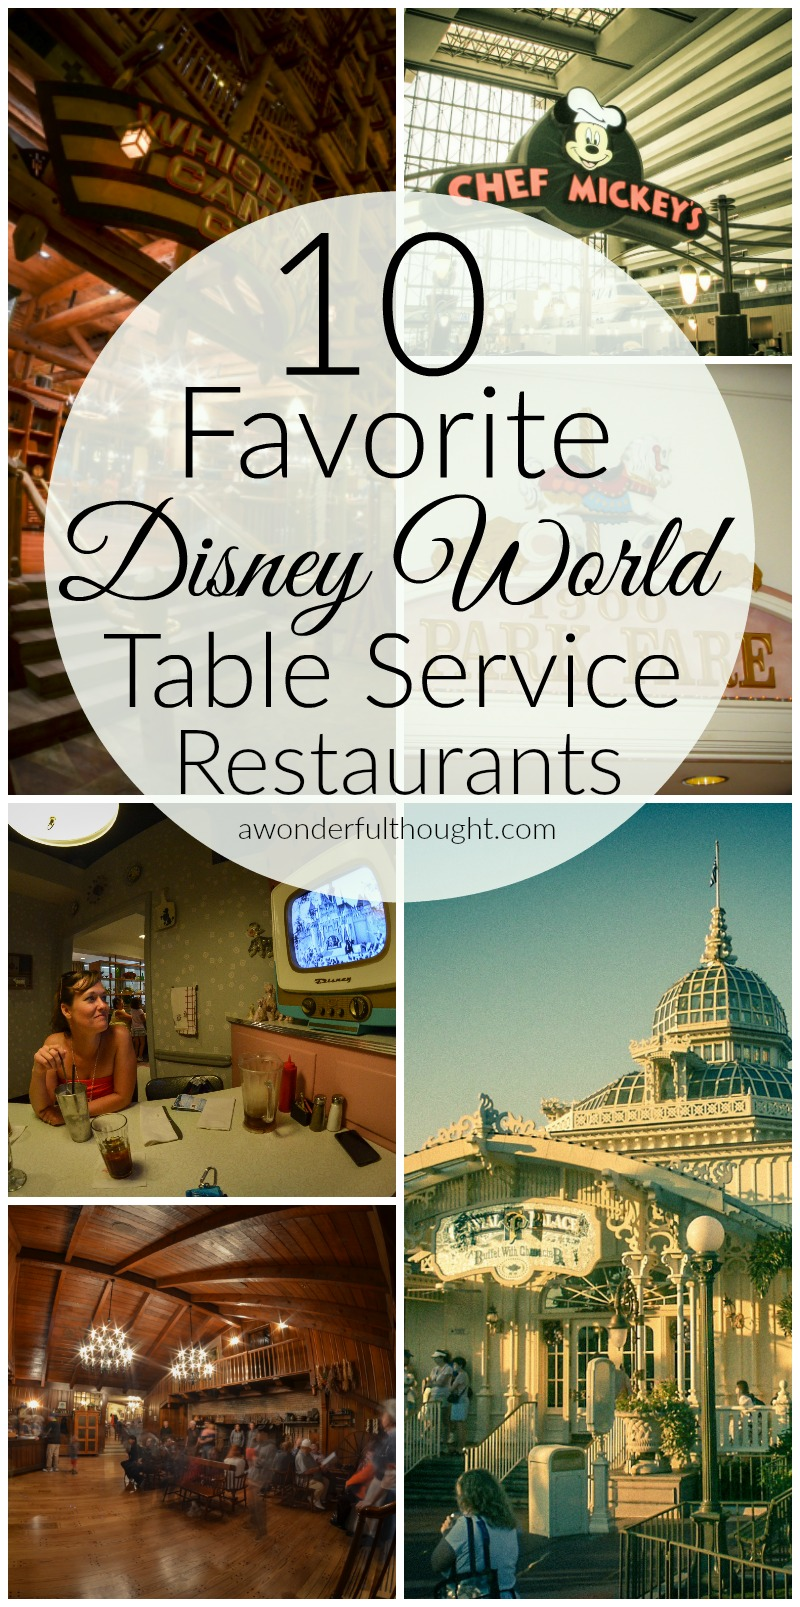 Here are our 10 favorite Disney World table service restaurants. These are great for kids and some are even character meals | awonderfulthought.com